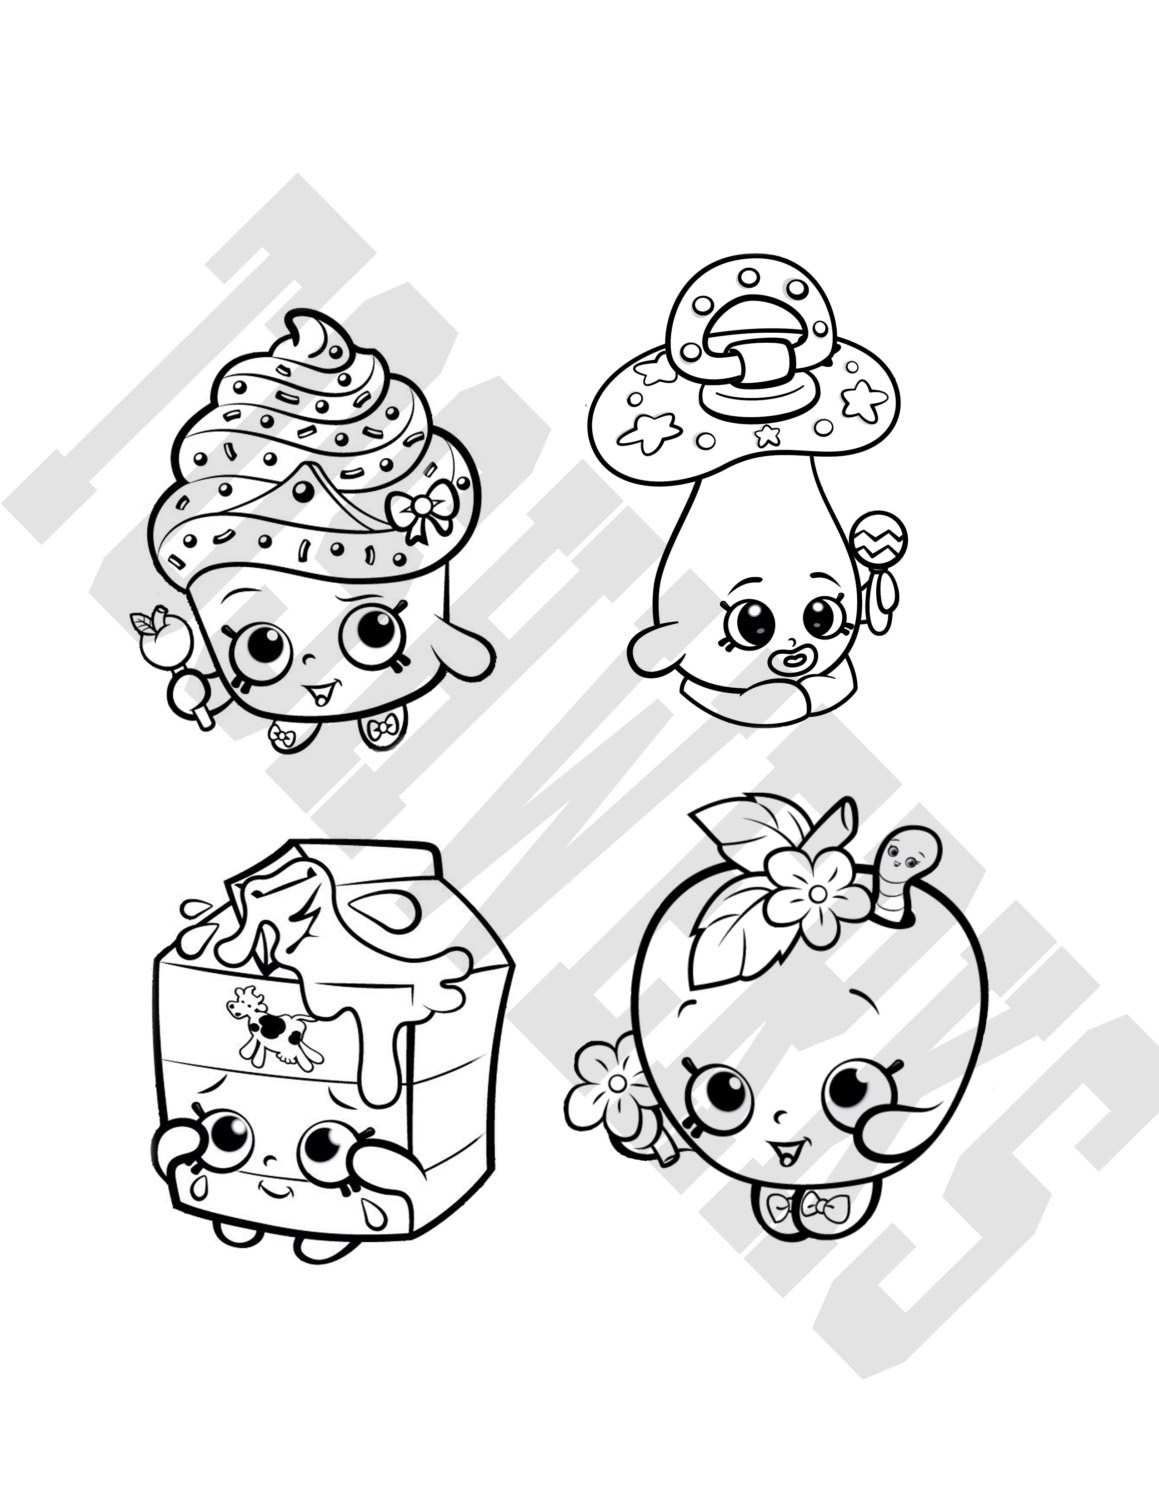 Shopkins Coloring Pages Spilled Milk Printable 5 4477 Shopkins Split Milk Coloriage Dessin Shopkins Colouring Pages Coloring Pages Free Coloring Pages